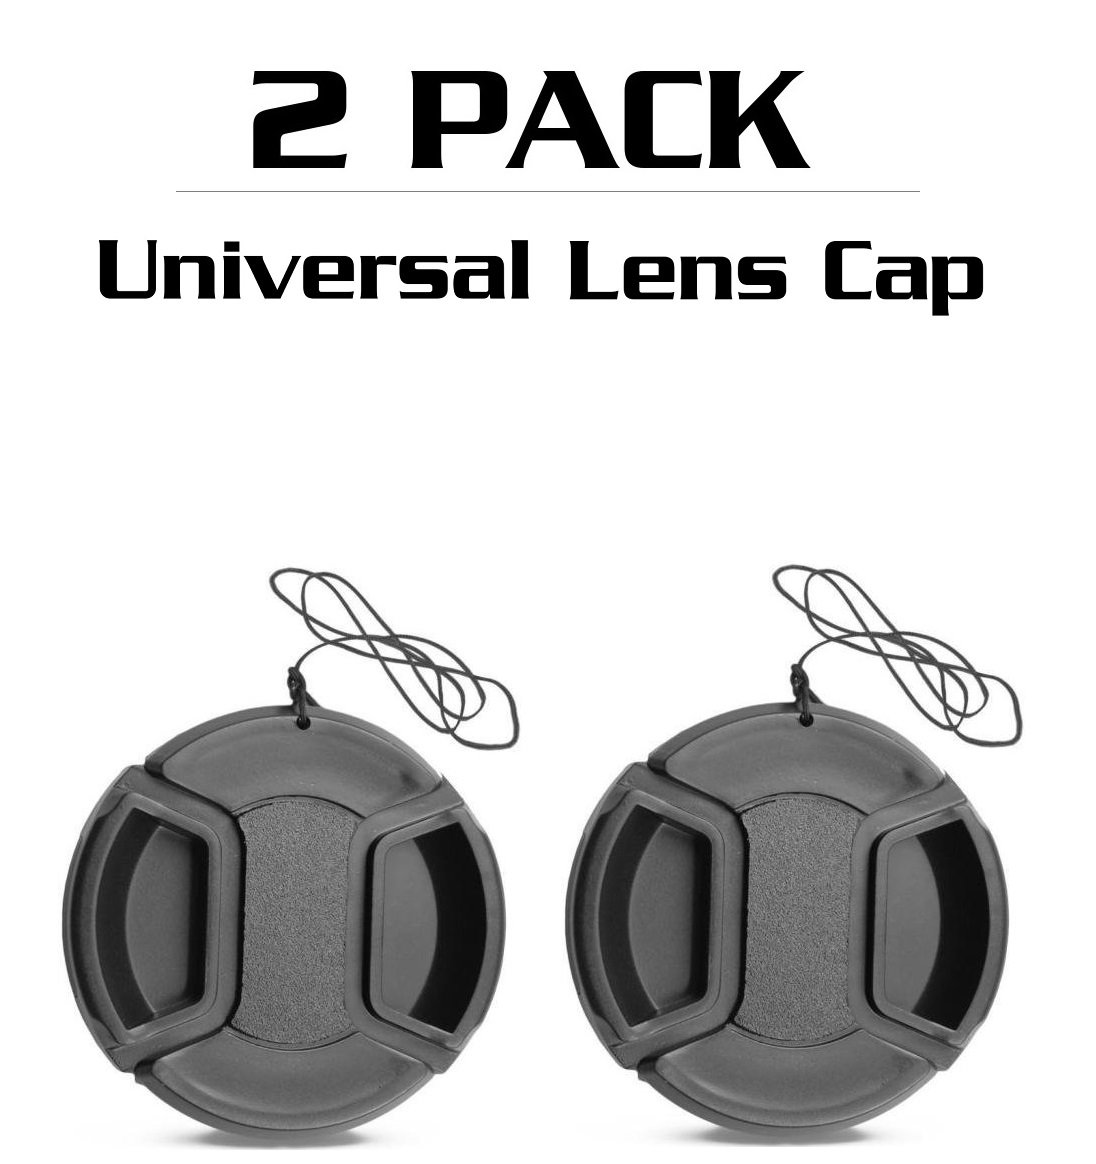 55mm [ 2 Pack ] - Center Pinch Lens Cap Cover With Cable for NIKON SLR Cameras (82mm)